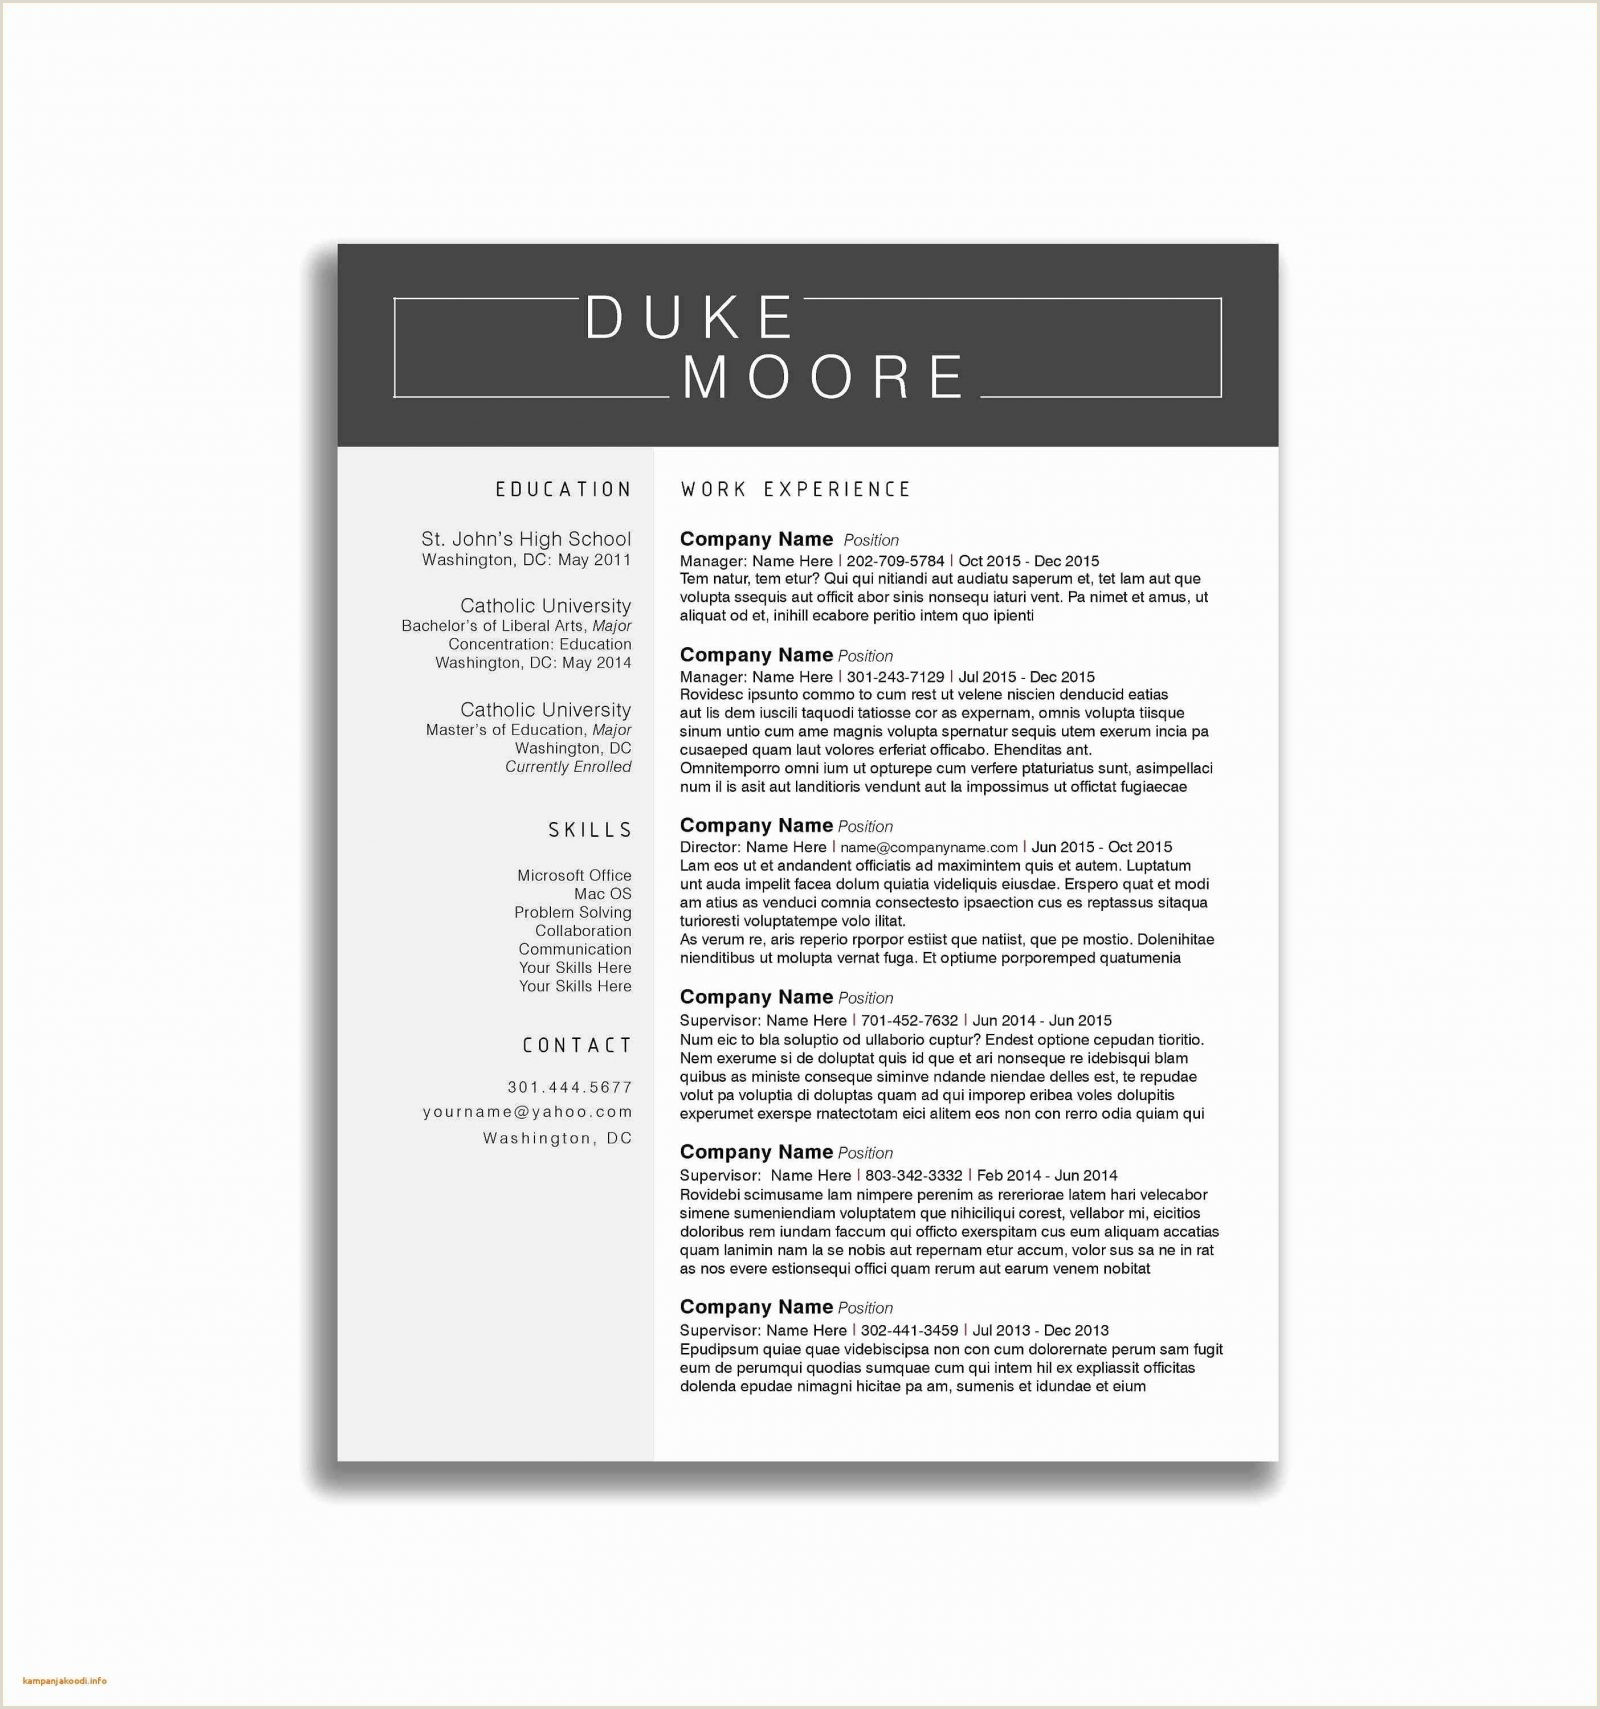 Fresher Resume Format Free Download In Ms Word Choose The Best Latest Resume Templates 2019 Samples Word